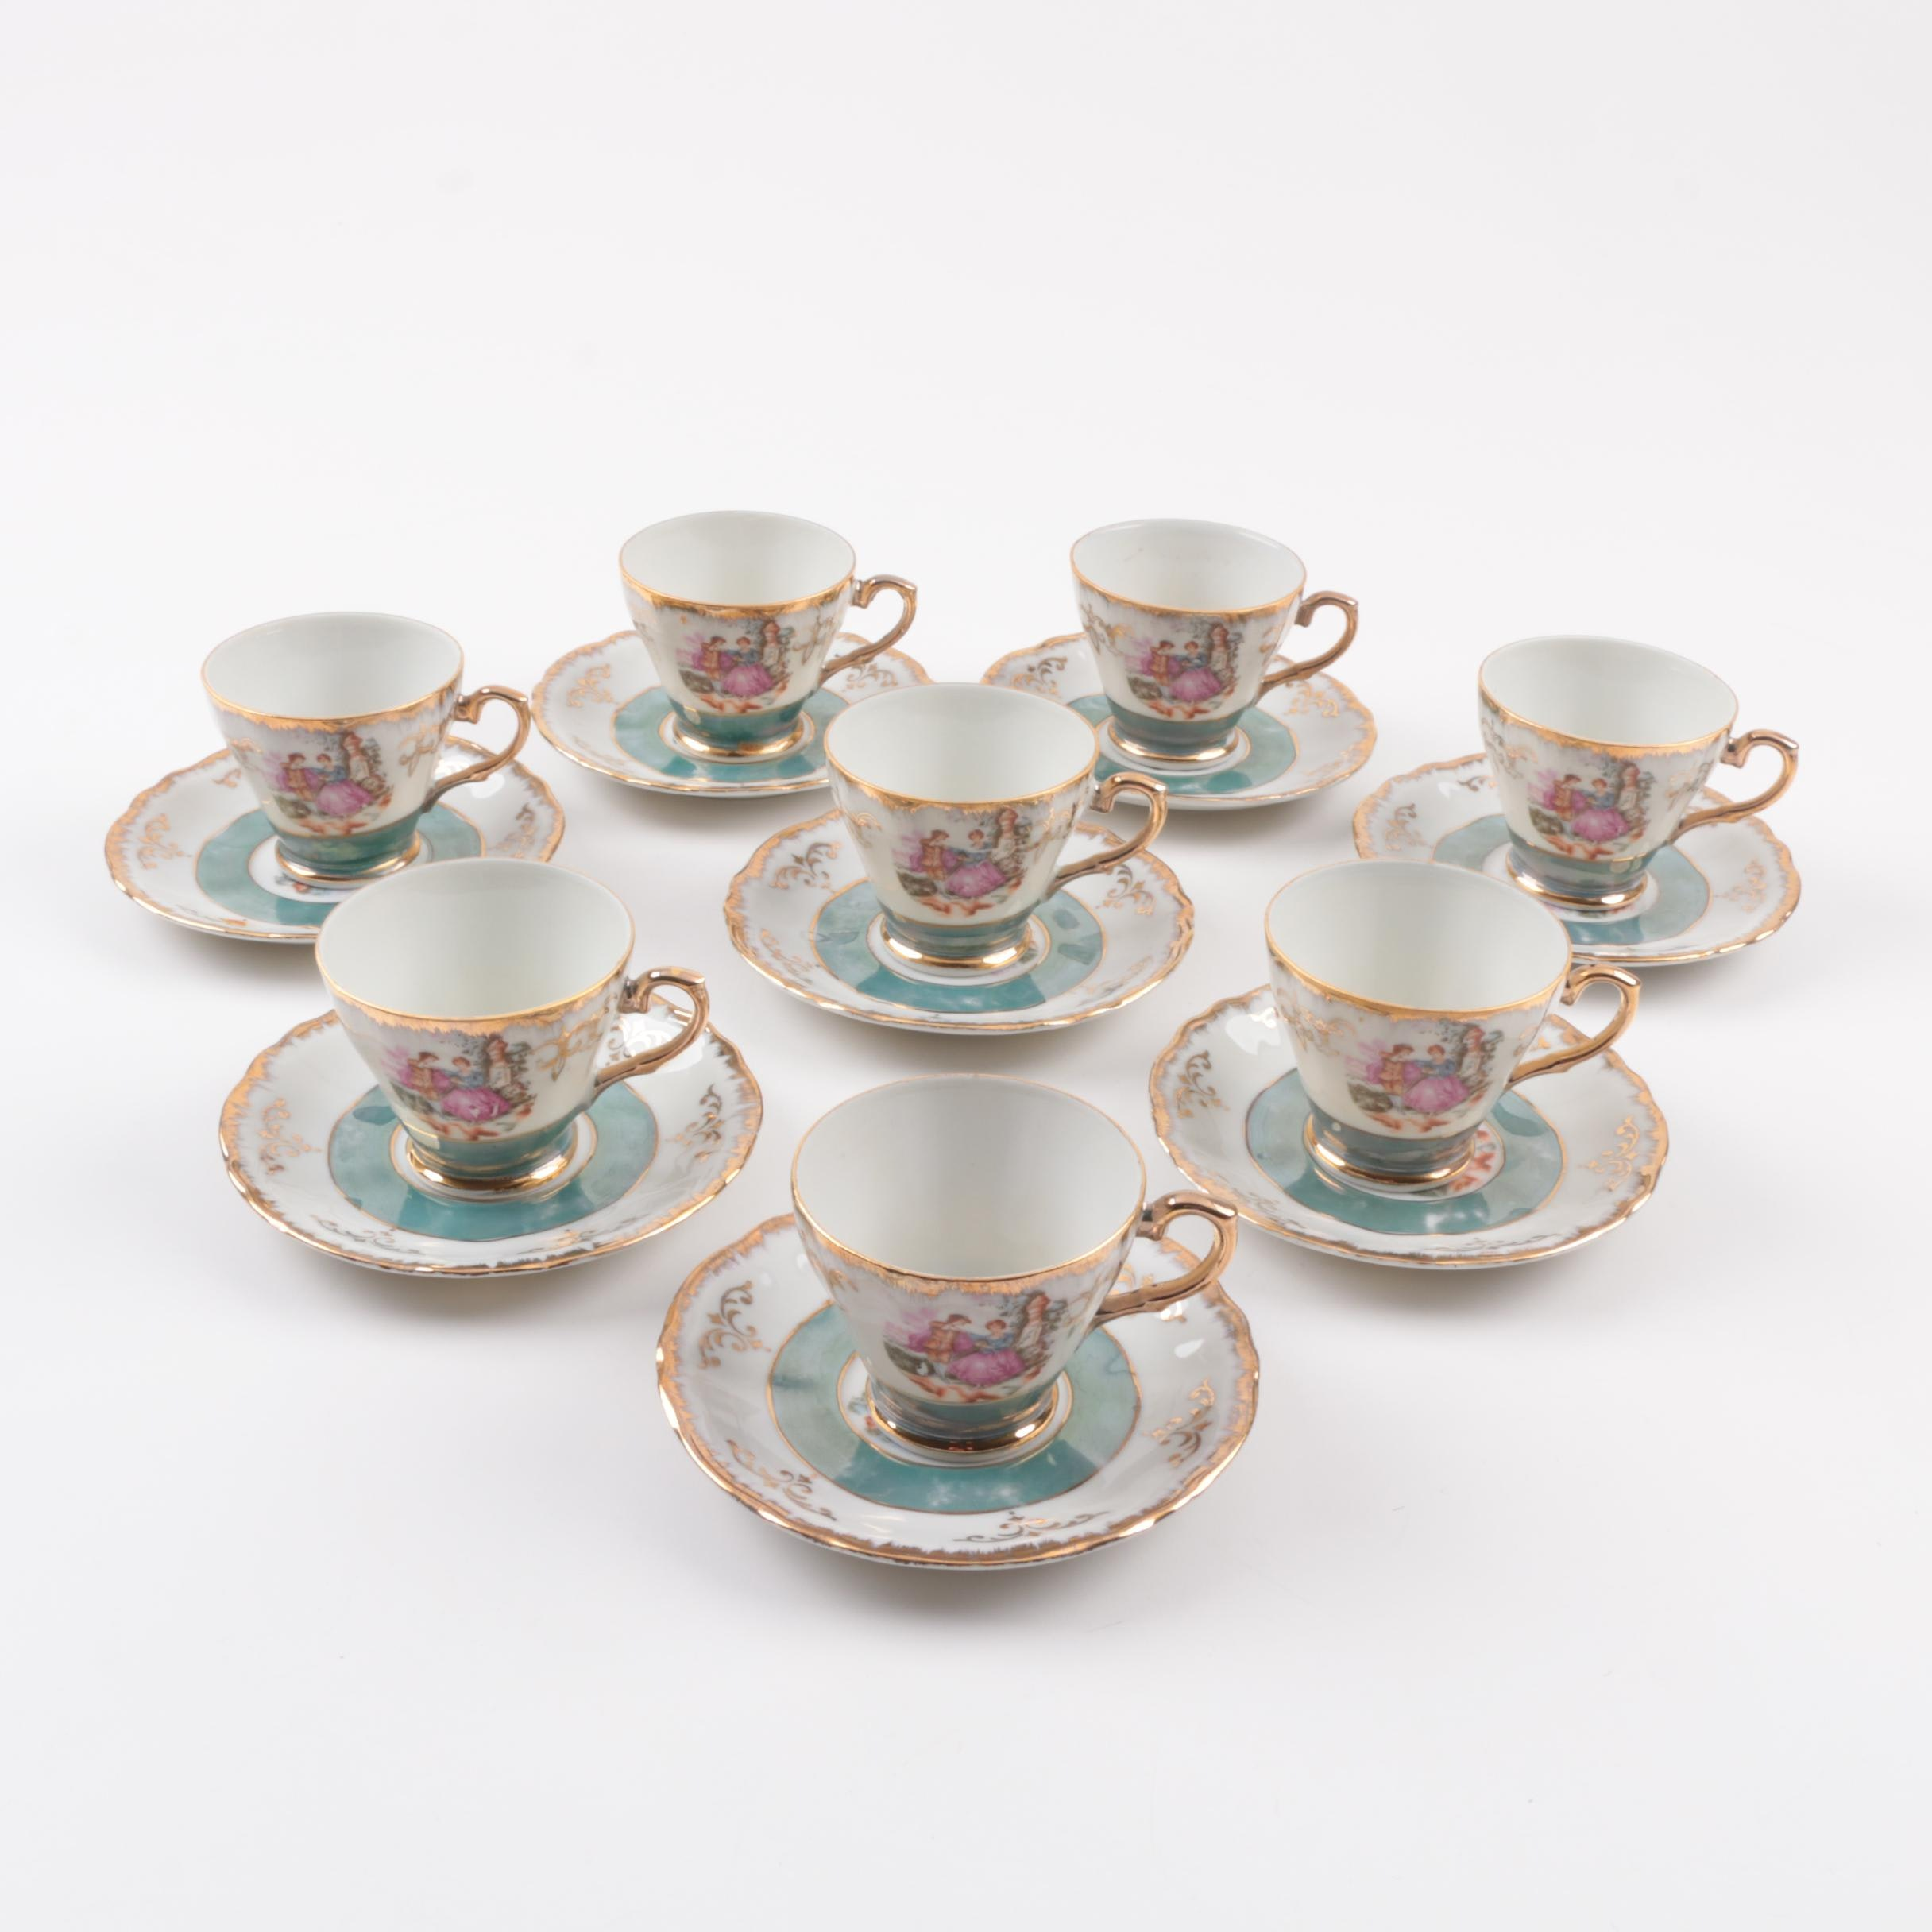 Vintage Porcelain Luster Demitasse Coffee Cups